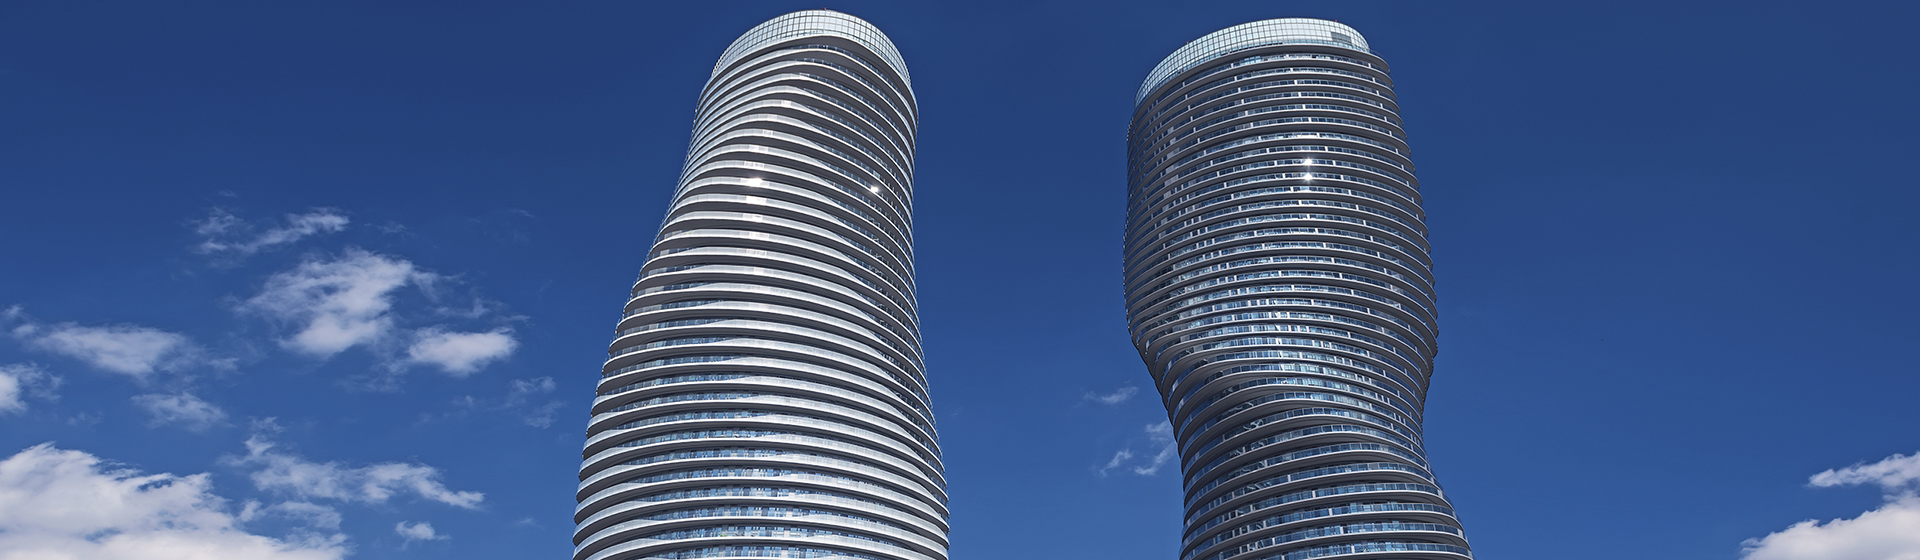 Mississauga Condos For Sale From $300K - $500K